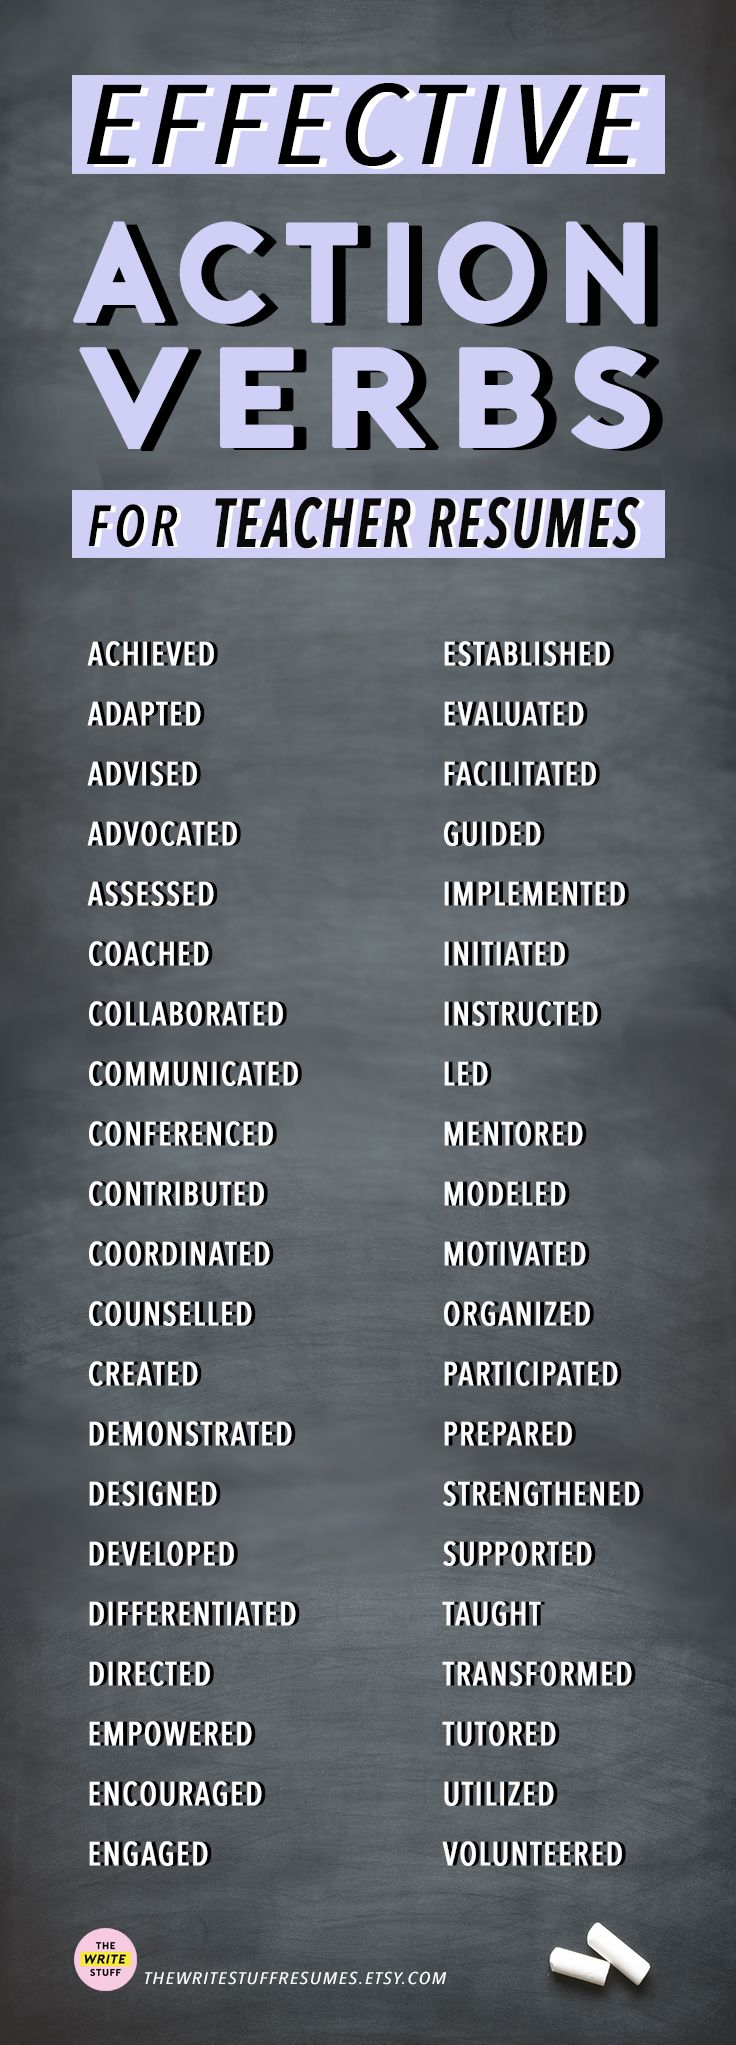 Teacher Resume Tips | Effective Resume Action Verbs | Educator ...